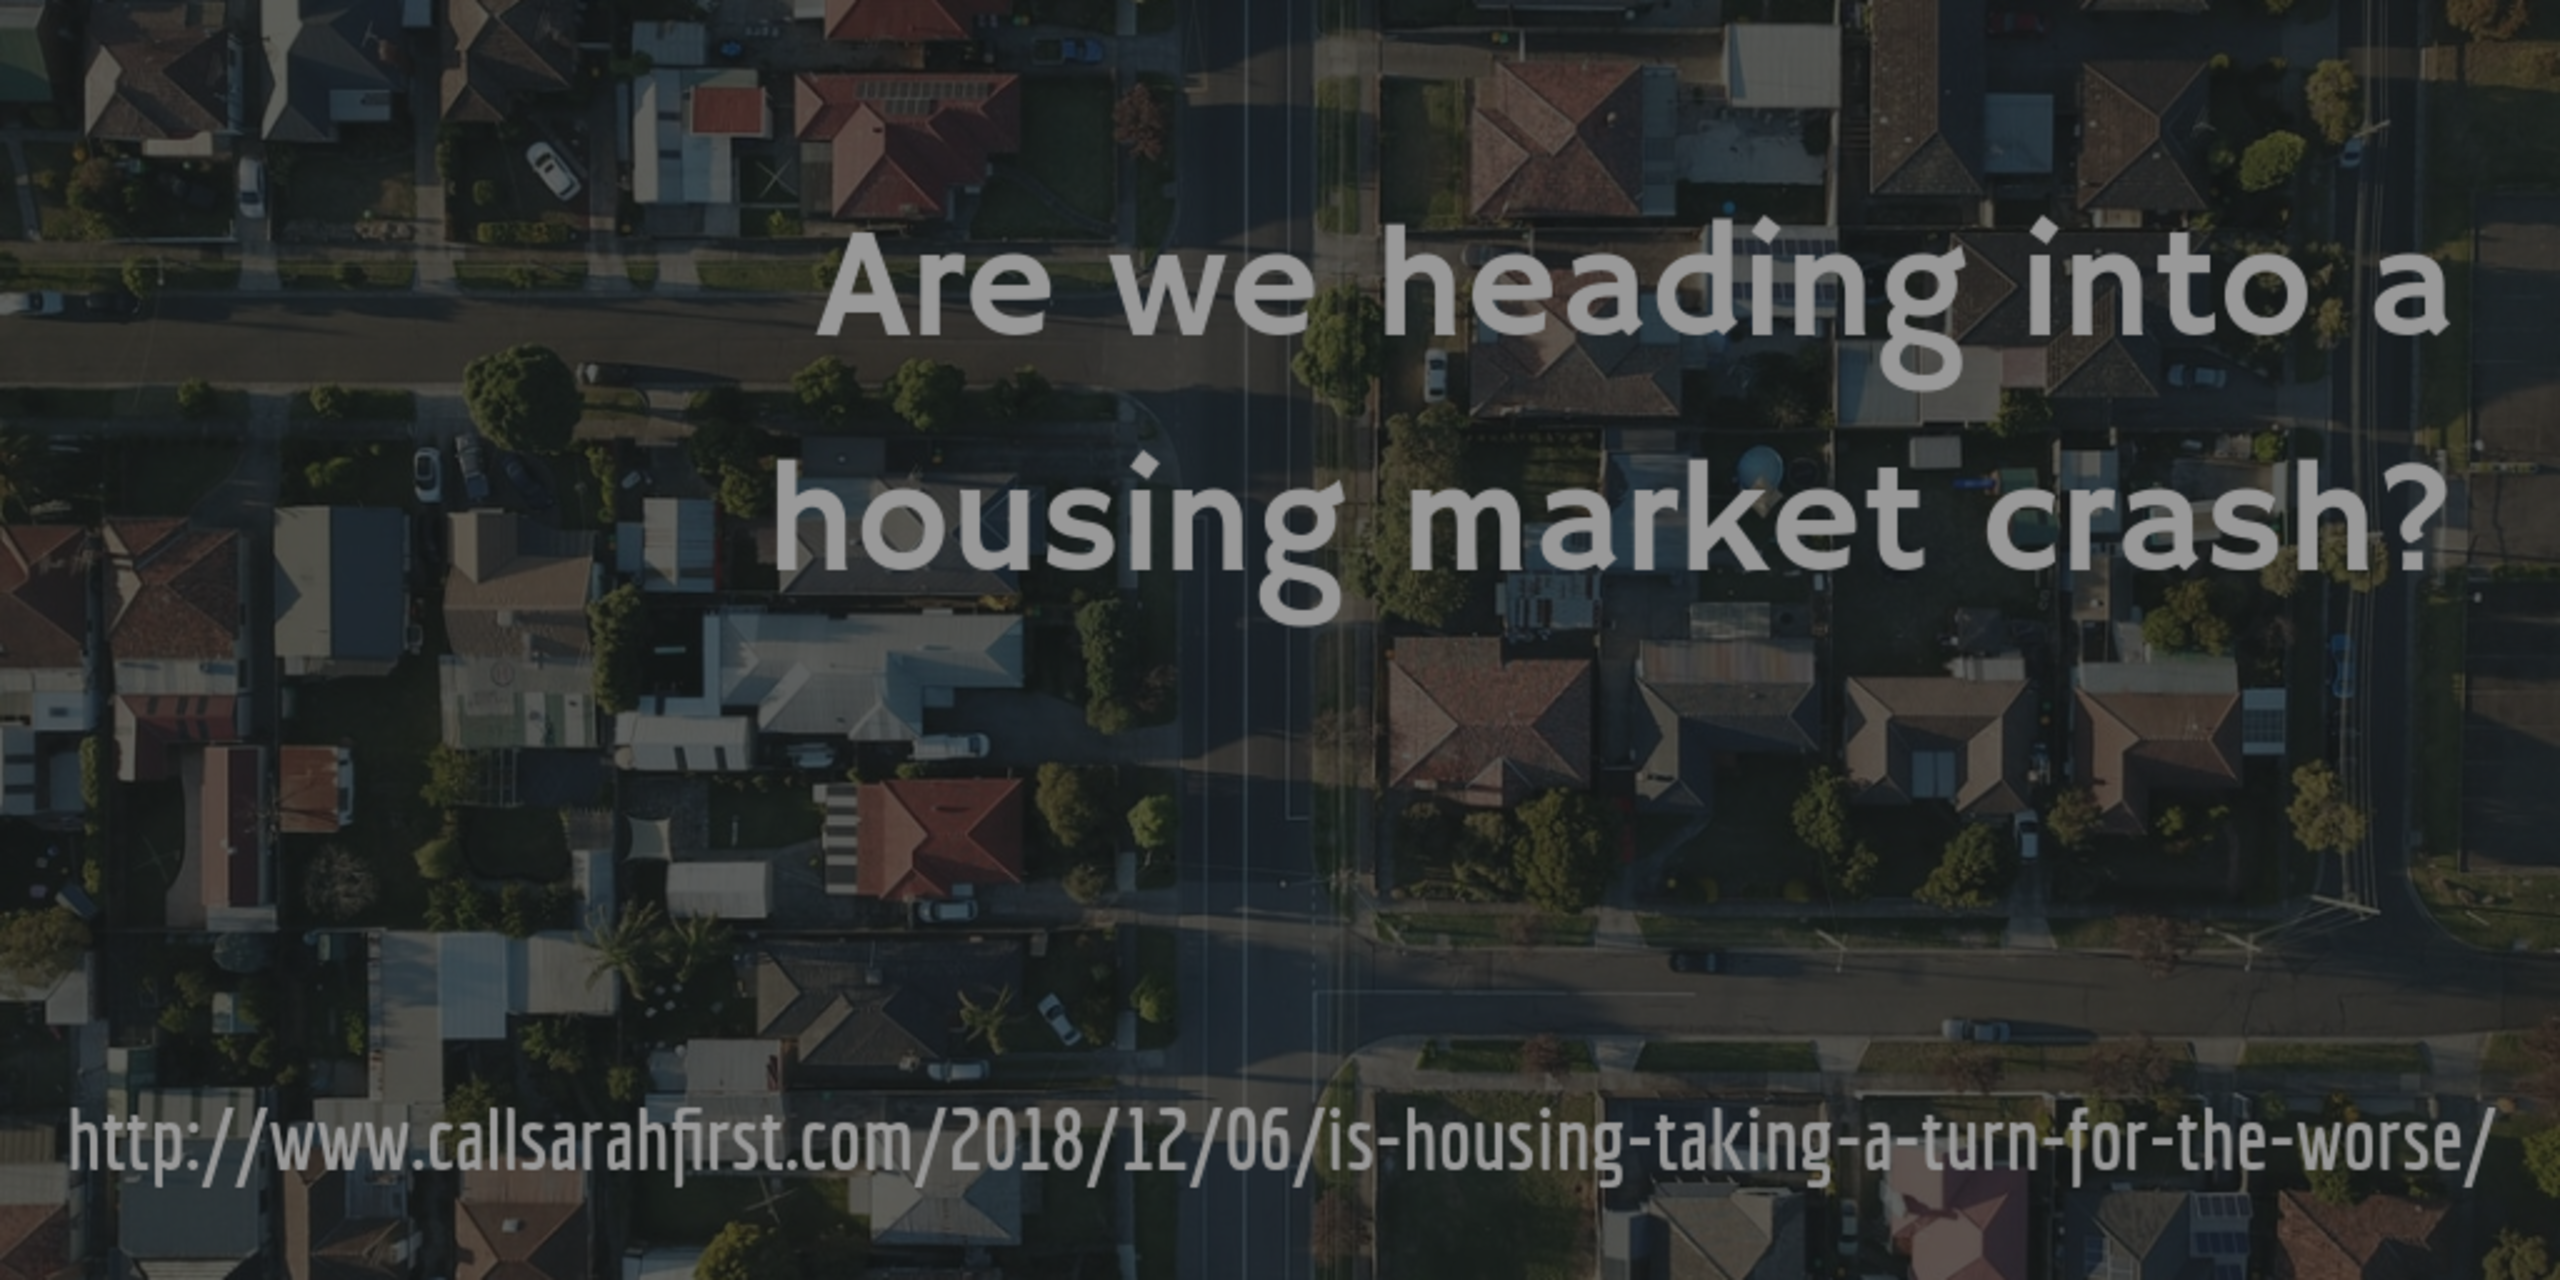 Is housing taking a turn for the worse?